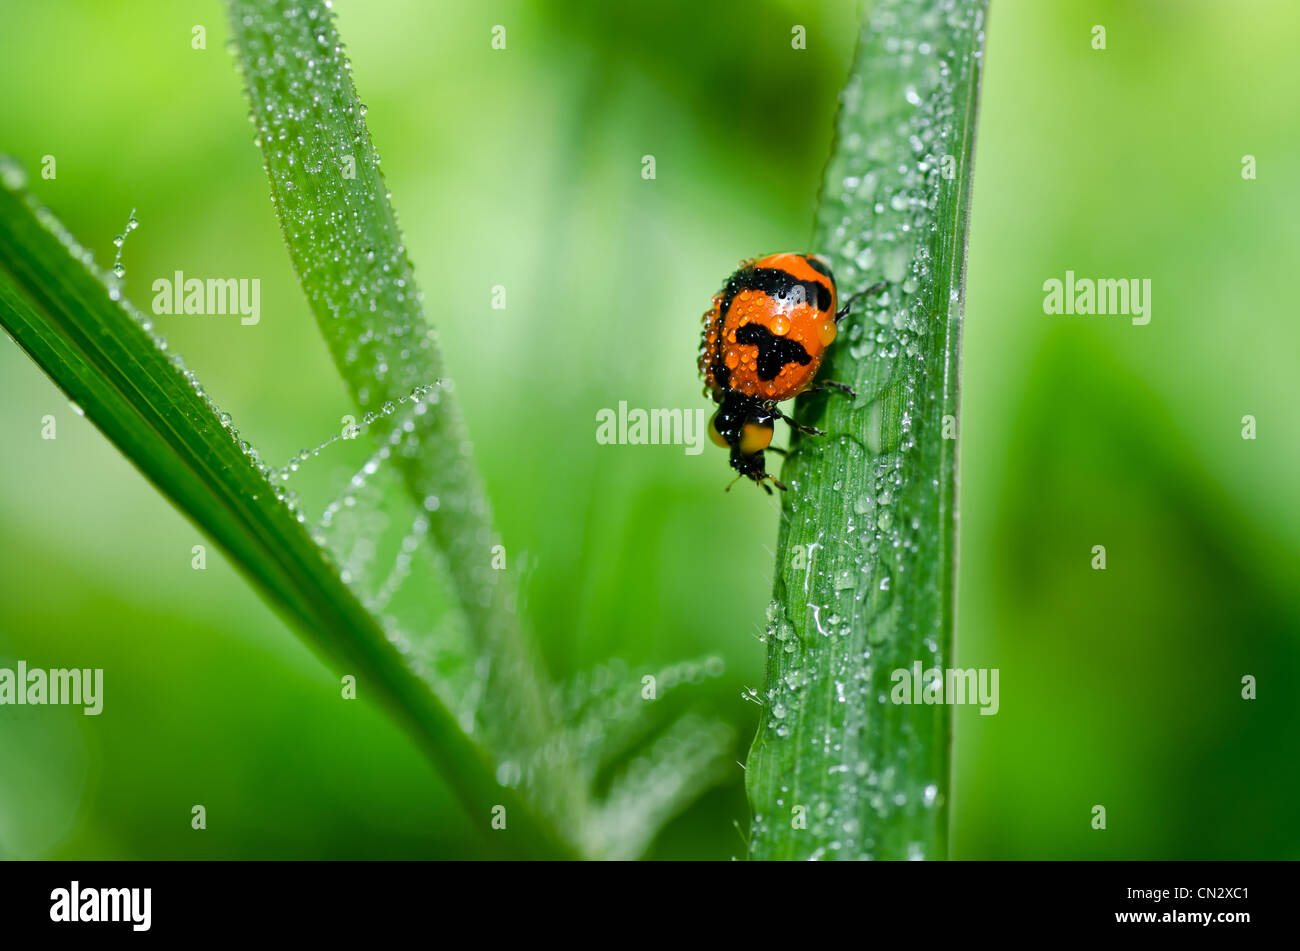 ladybug in the green nature or in the garden - Stock Image